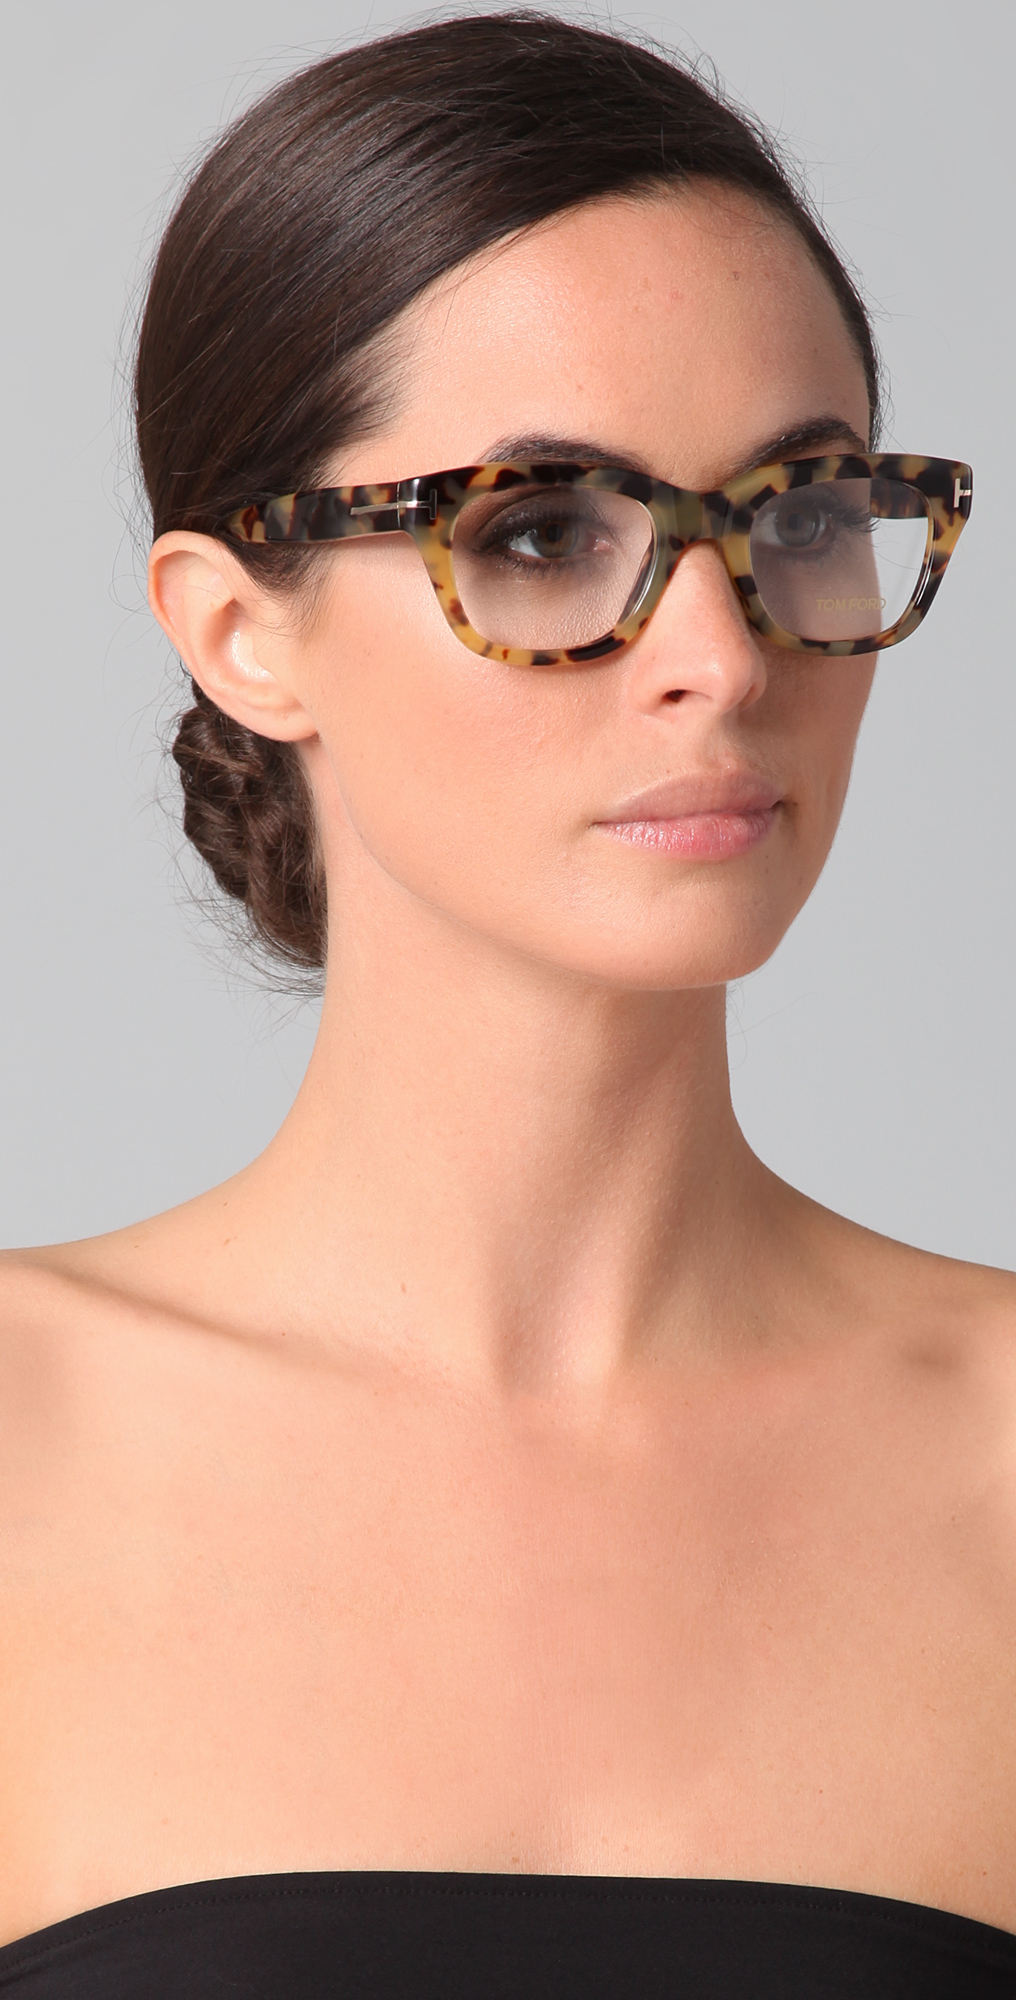 tom ford eyewear square glasses shopbop